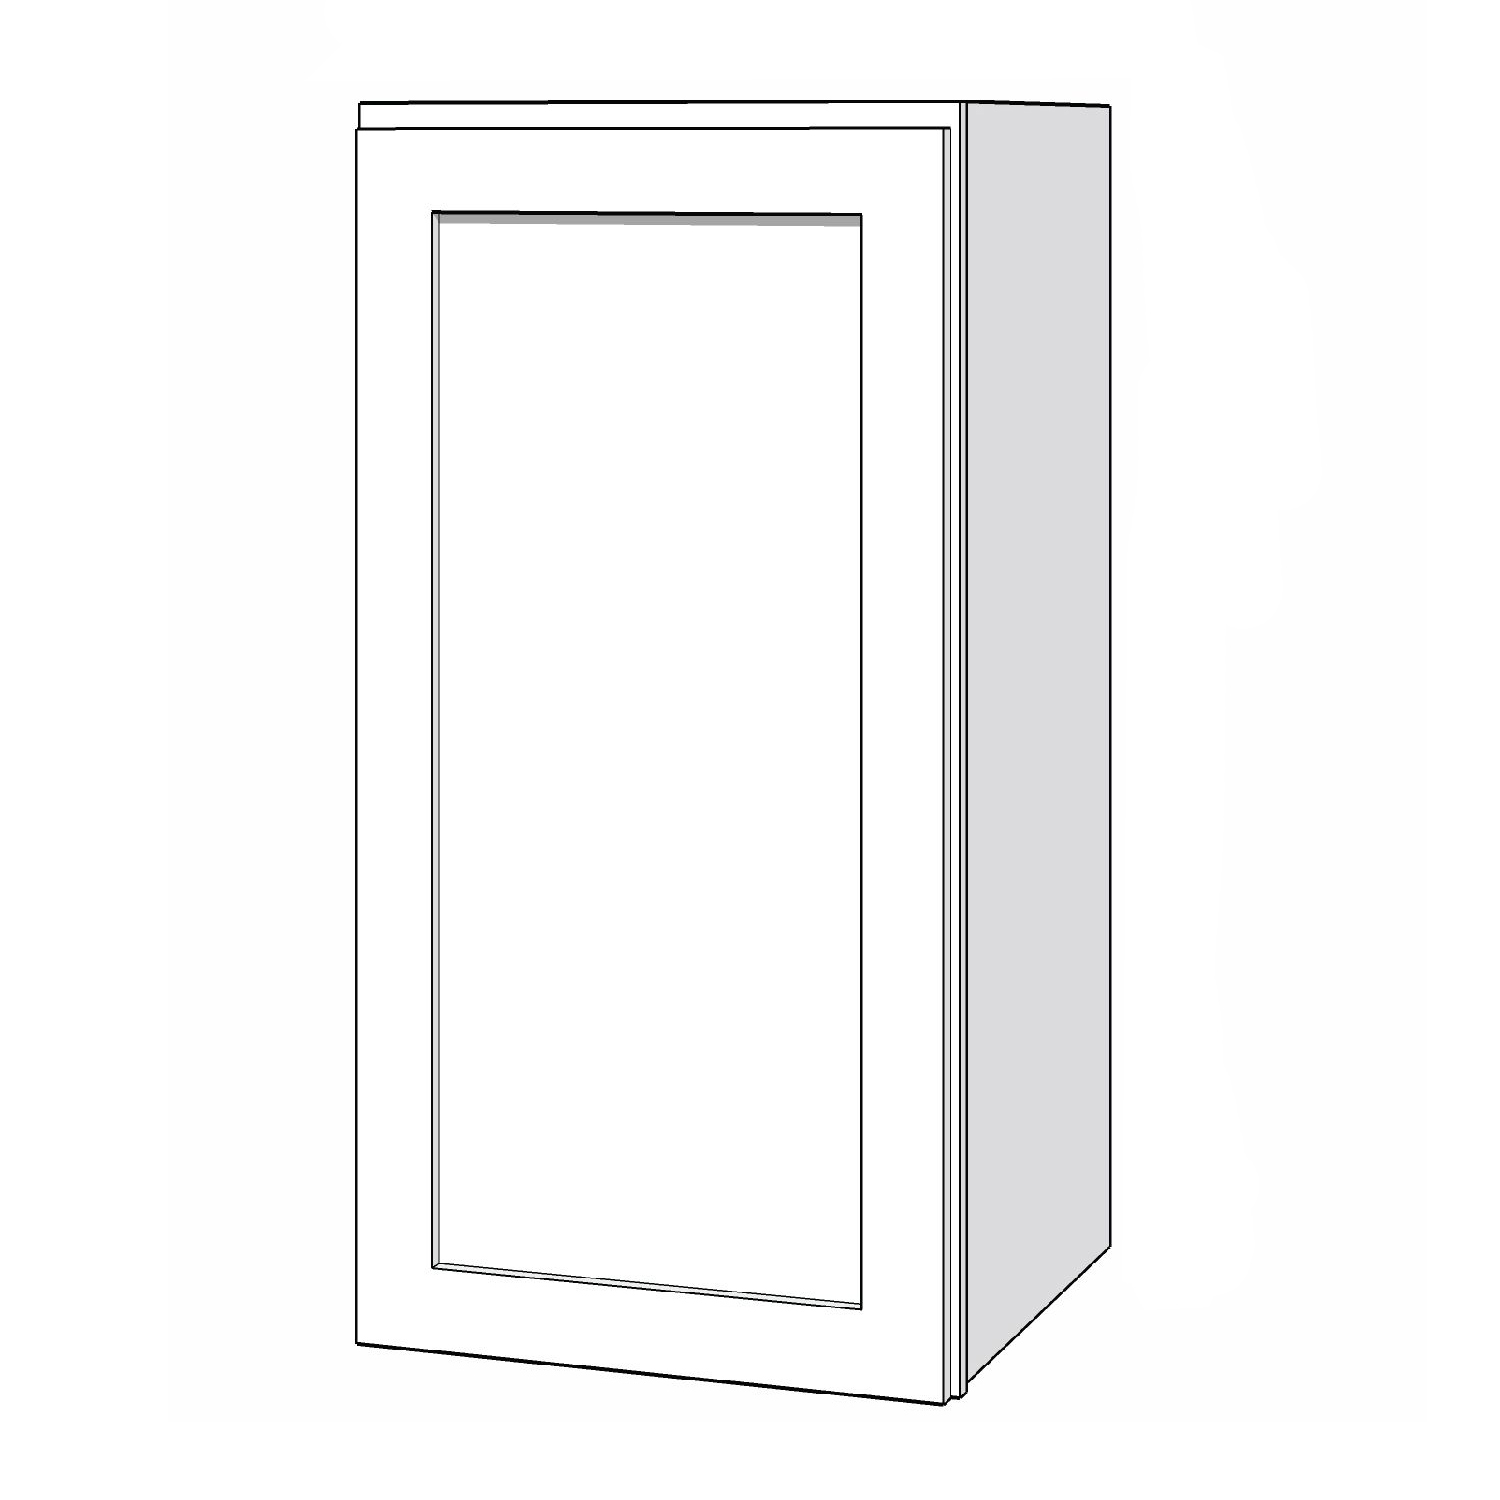 Wall Cabinet - 15in. x 30in. - White